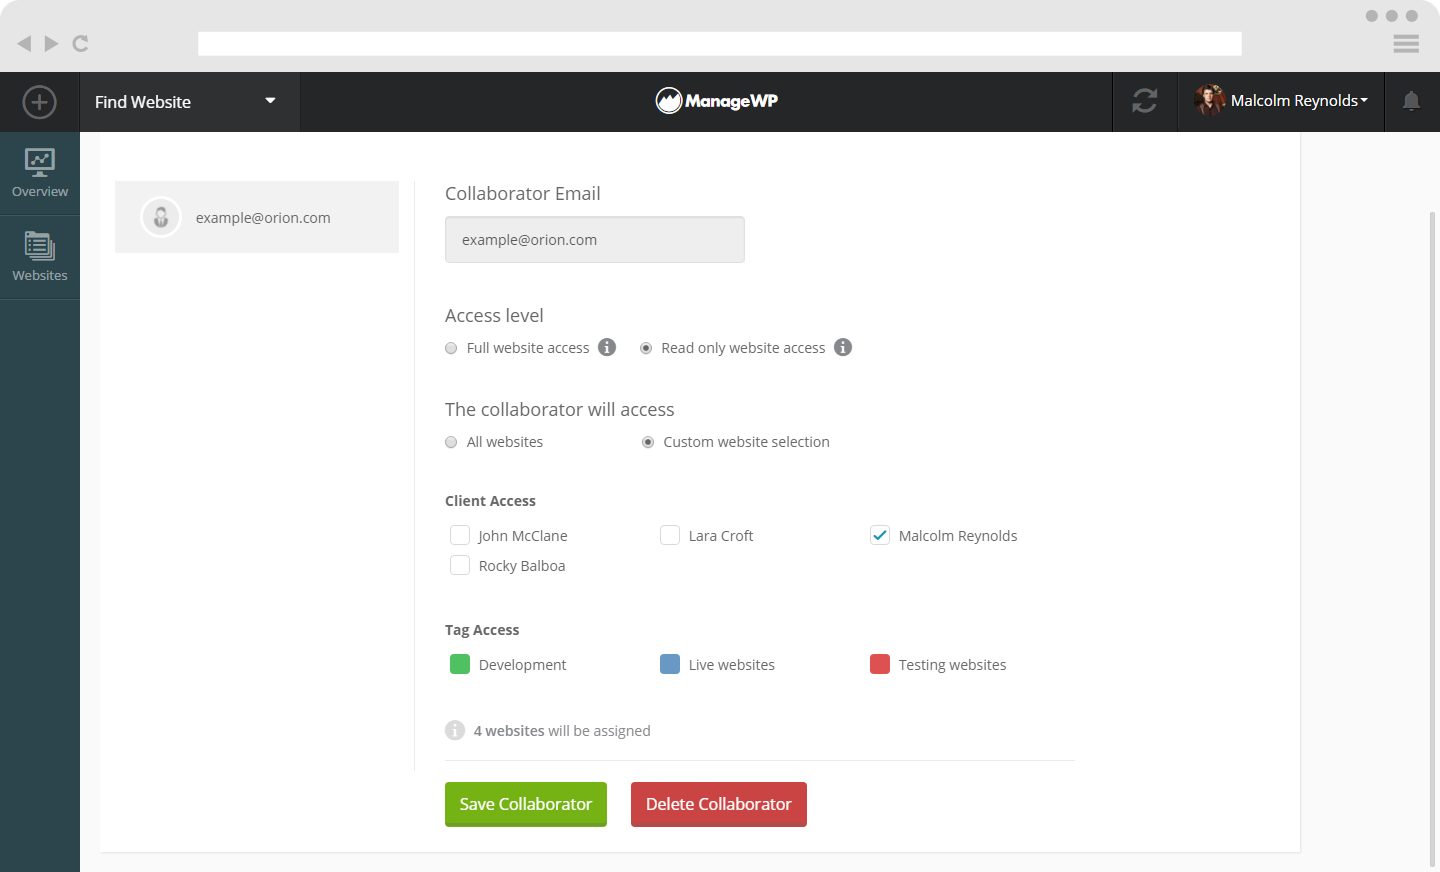 Collaborate tool